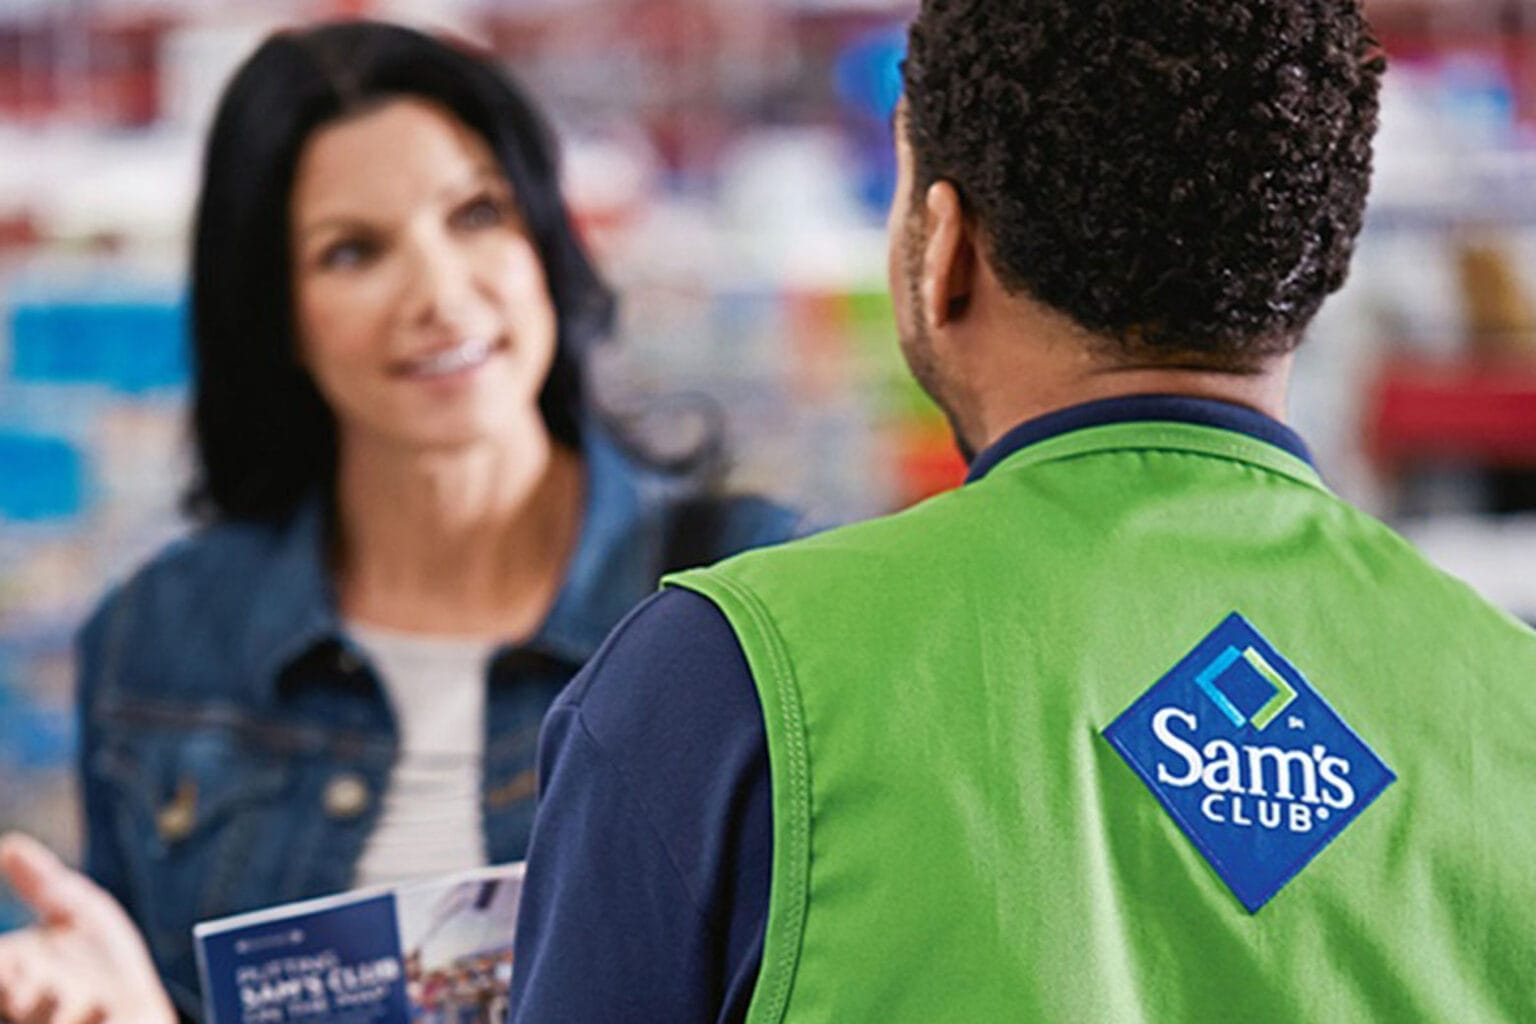 Enjoy premium products at a discount with this Sam's Club membership